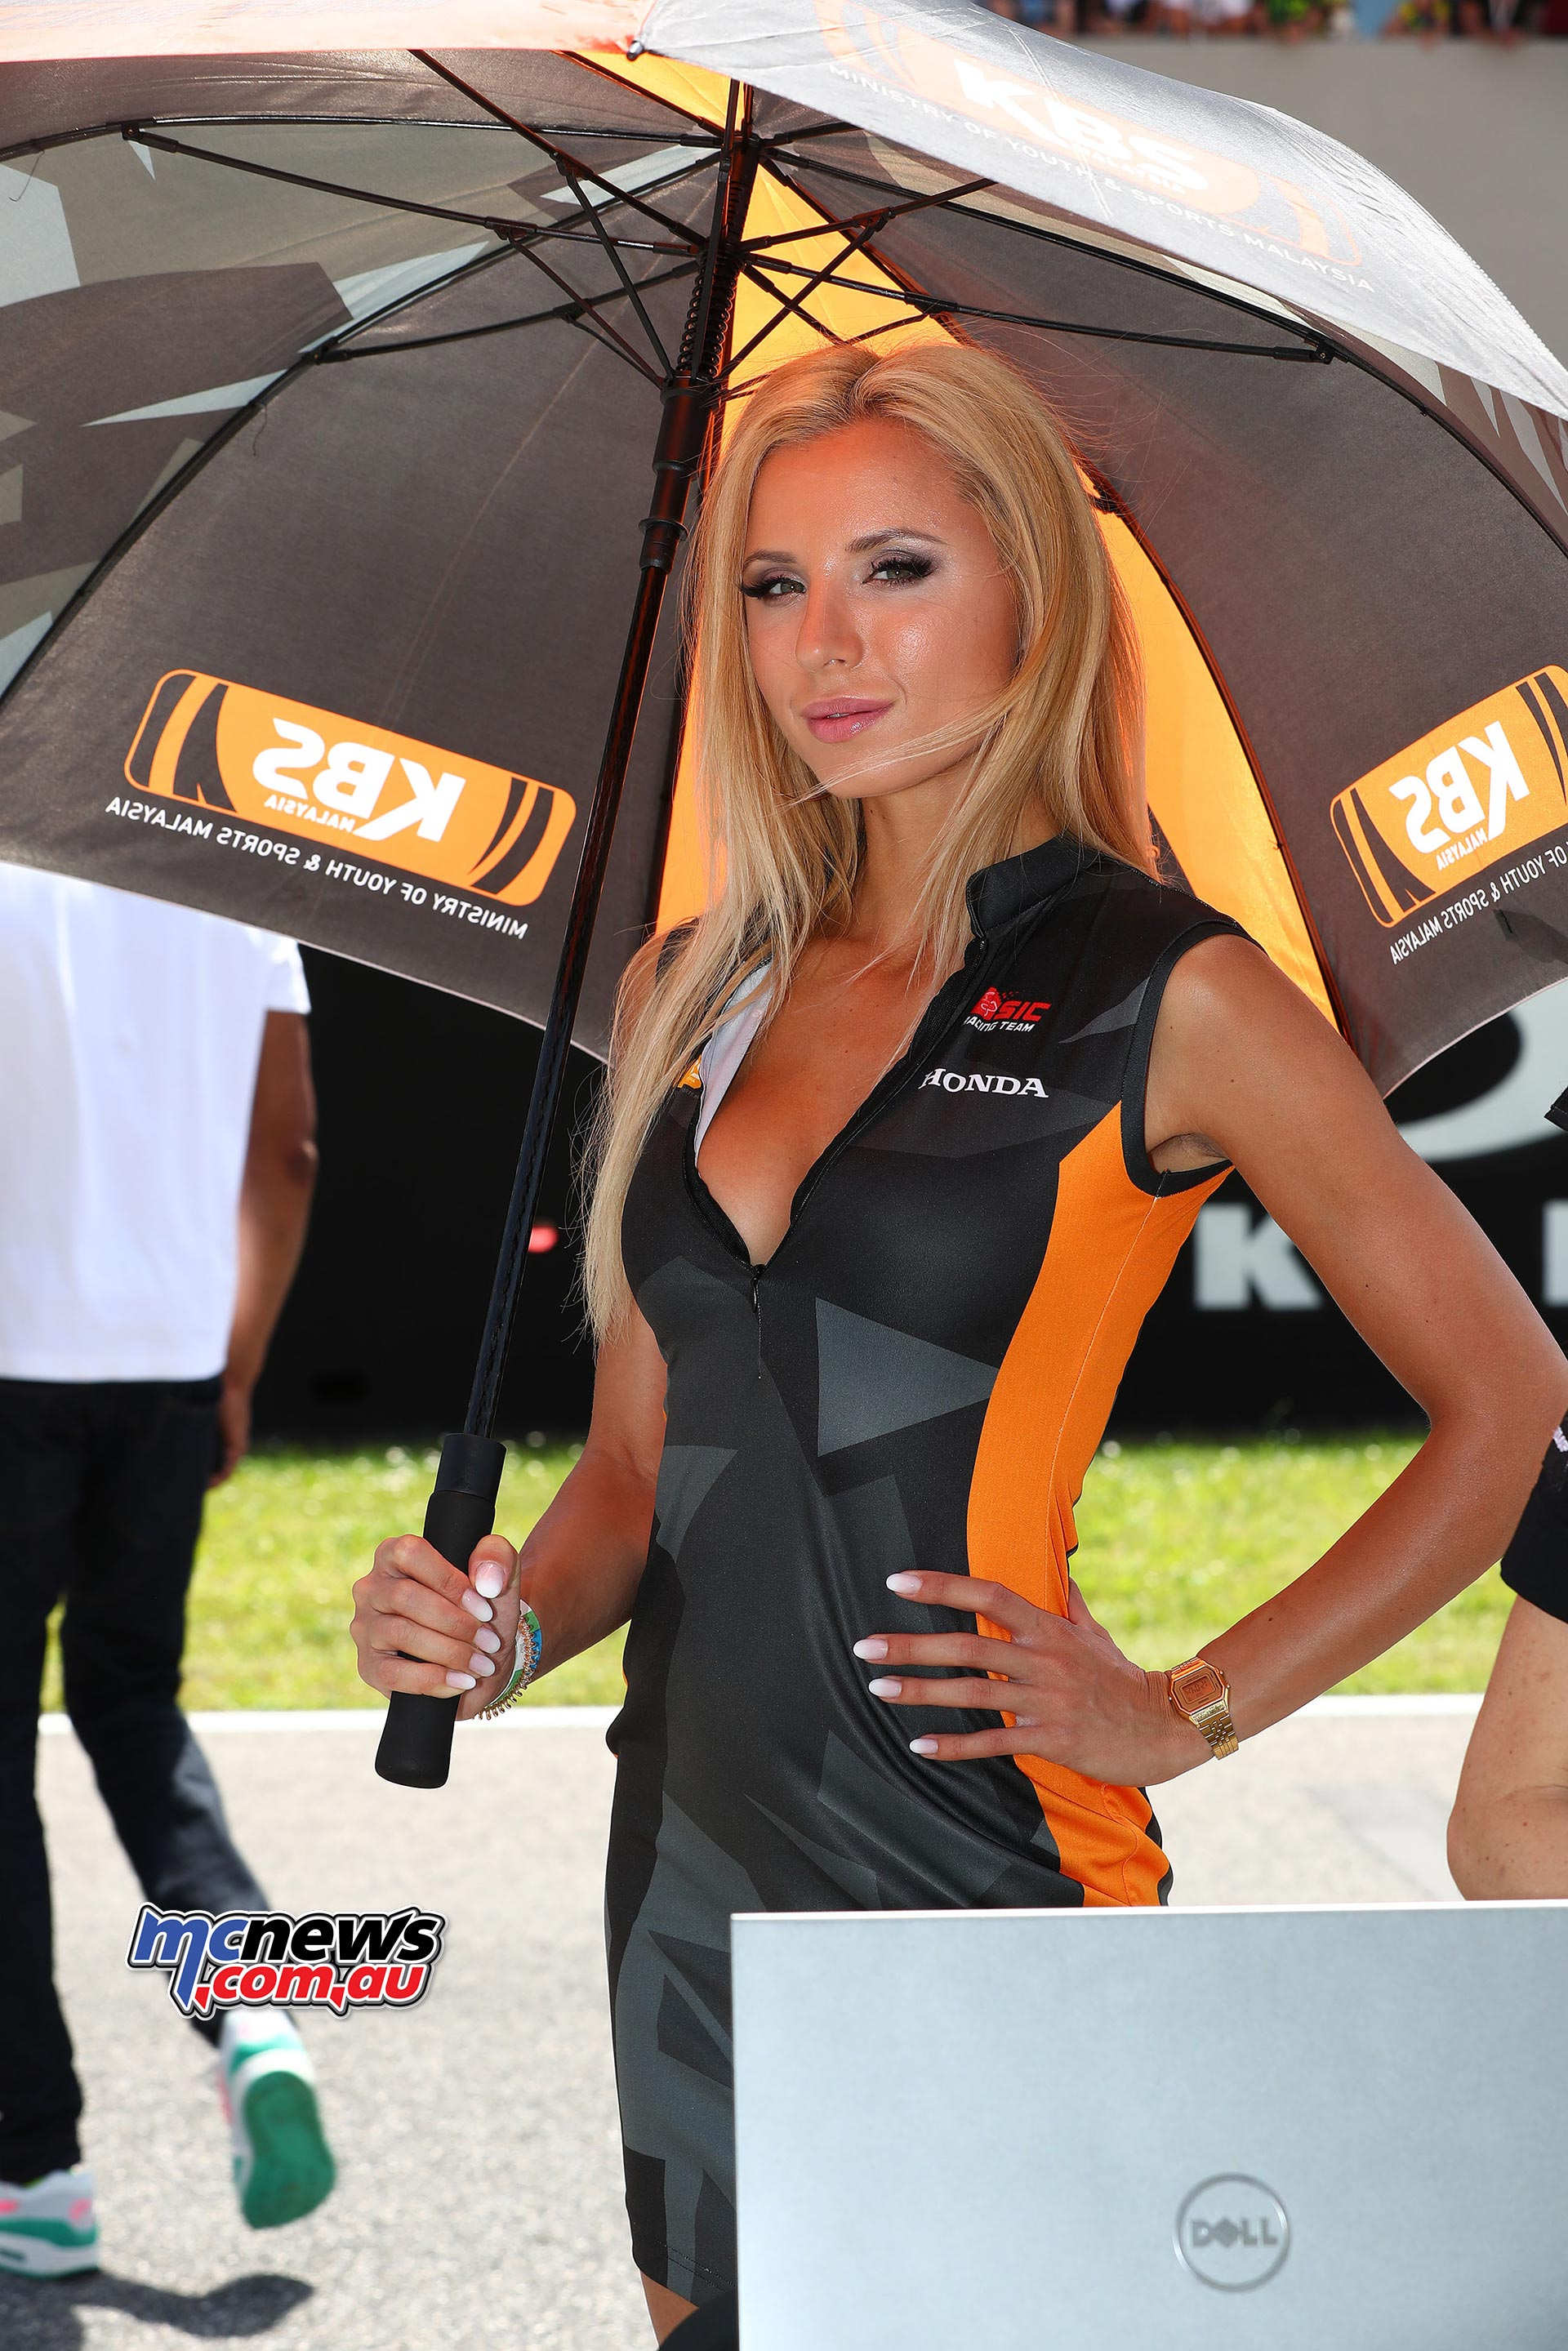 2018 Mugello MotoGP | Grid Girls | Gallery B | MCNews.com.au